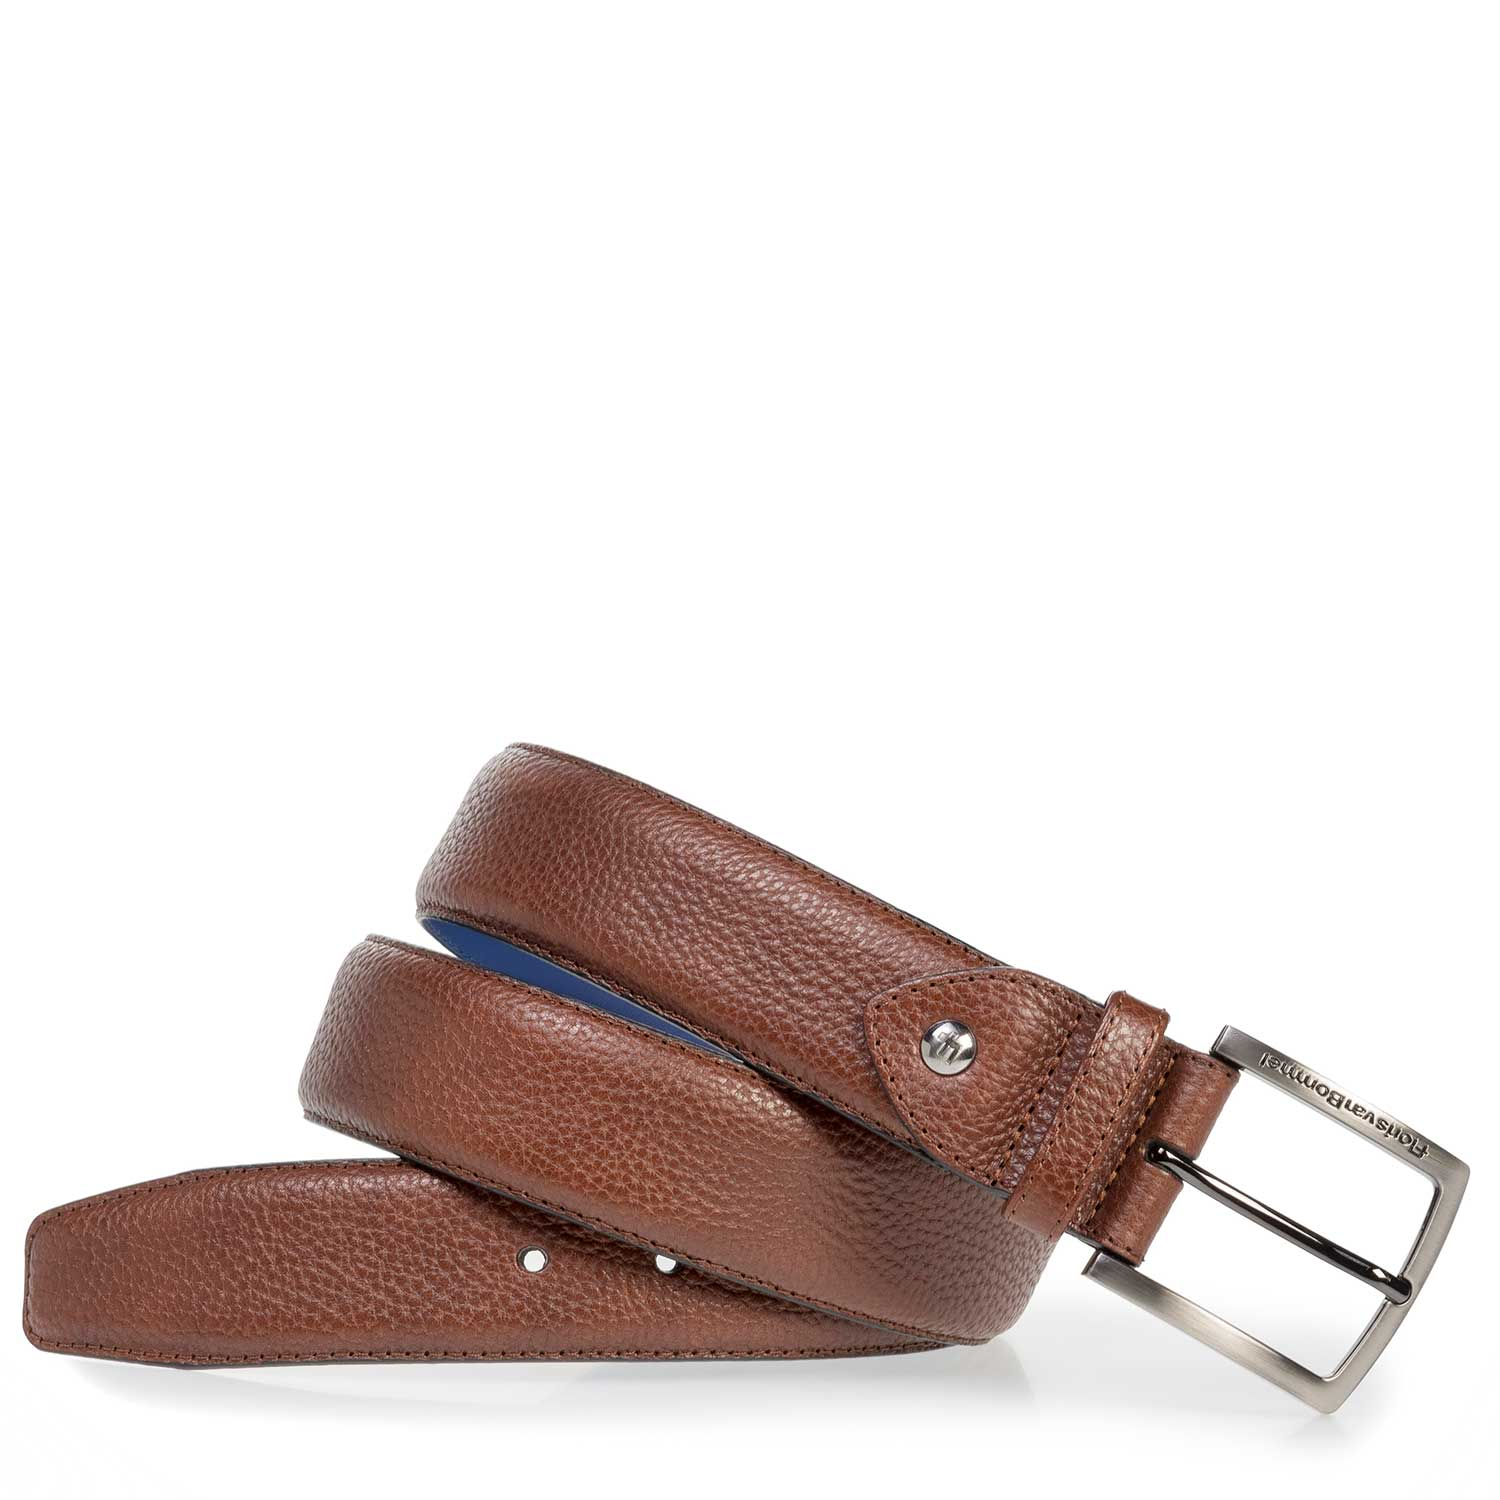 75202/11 - Cognac-coloured leather belt with print